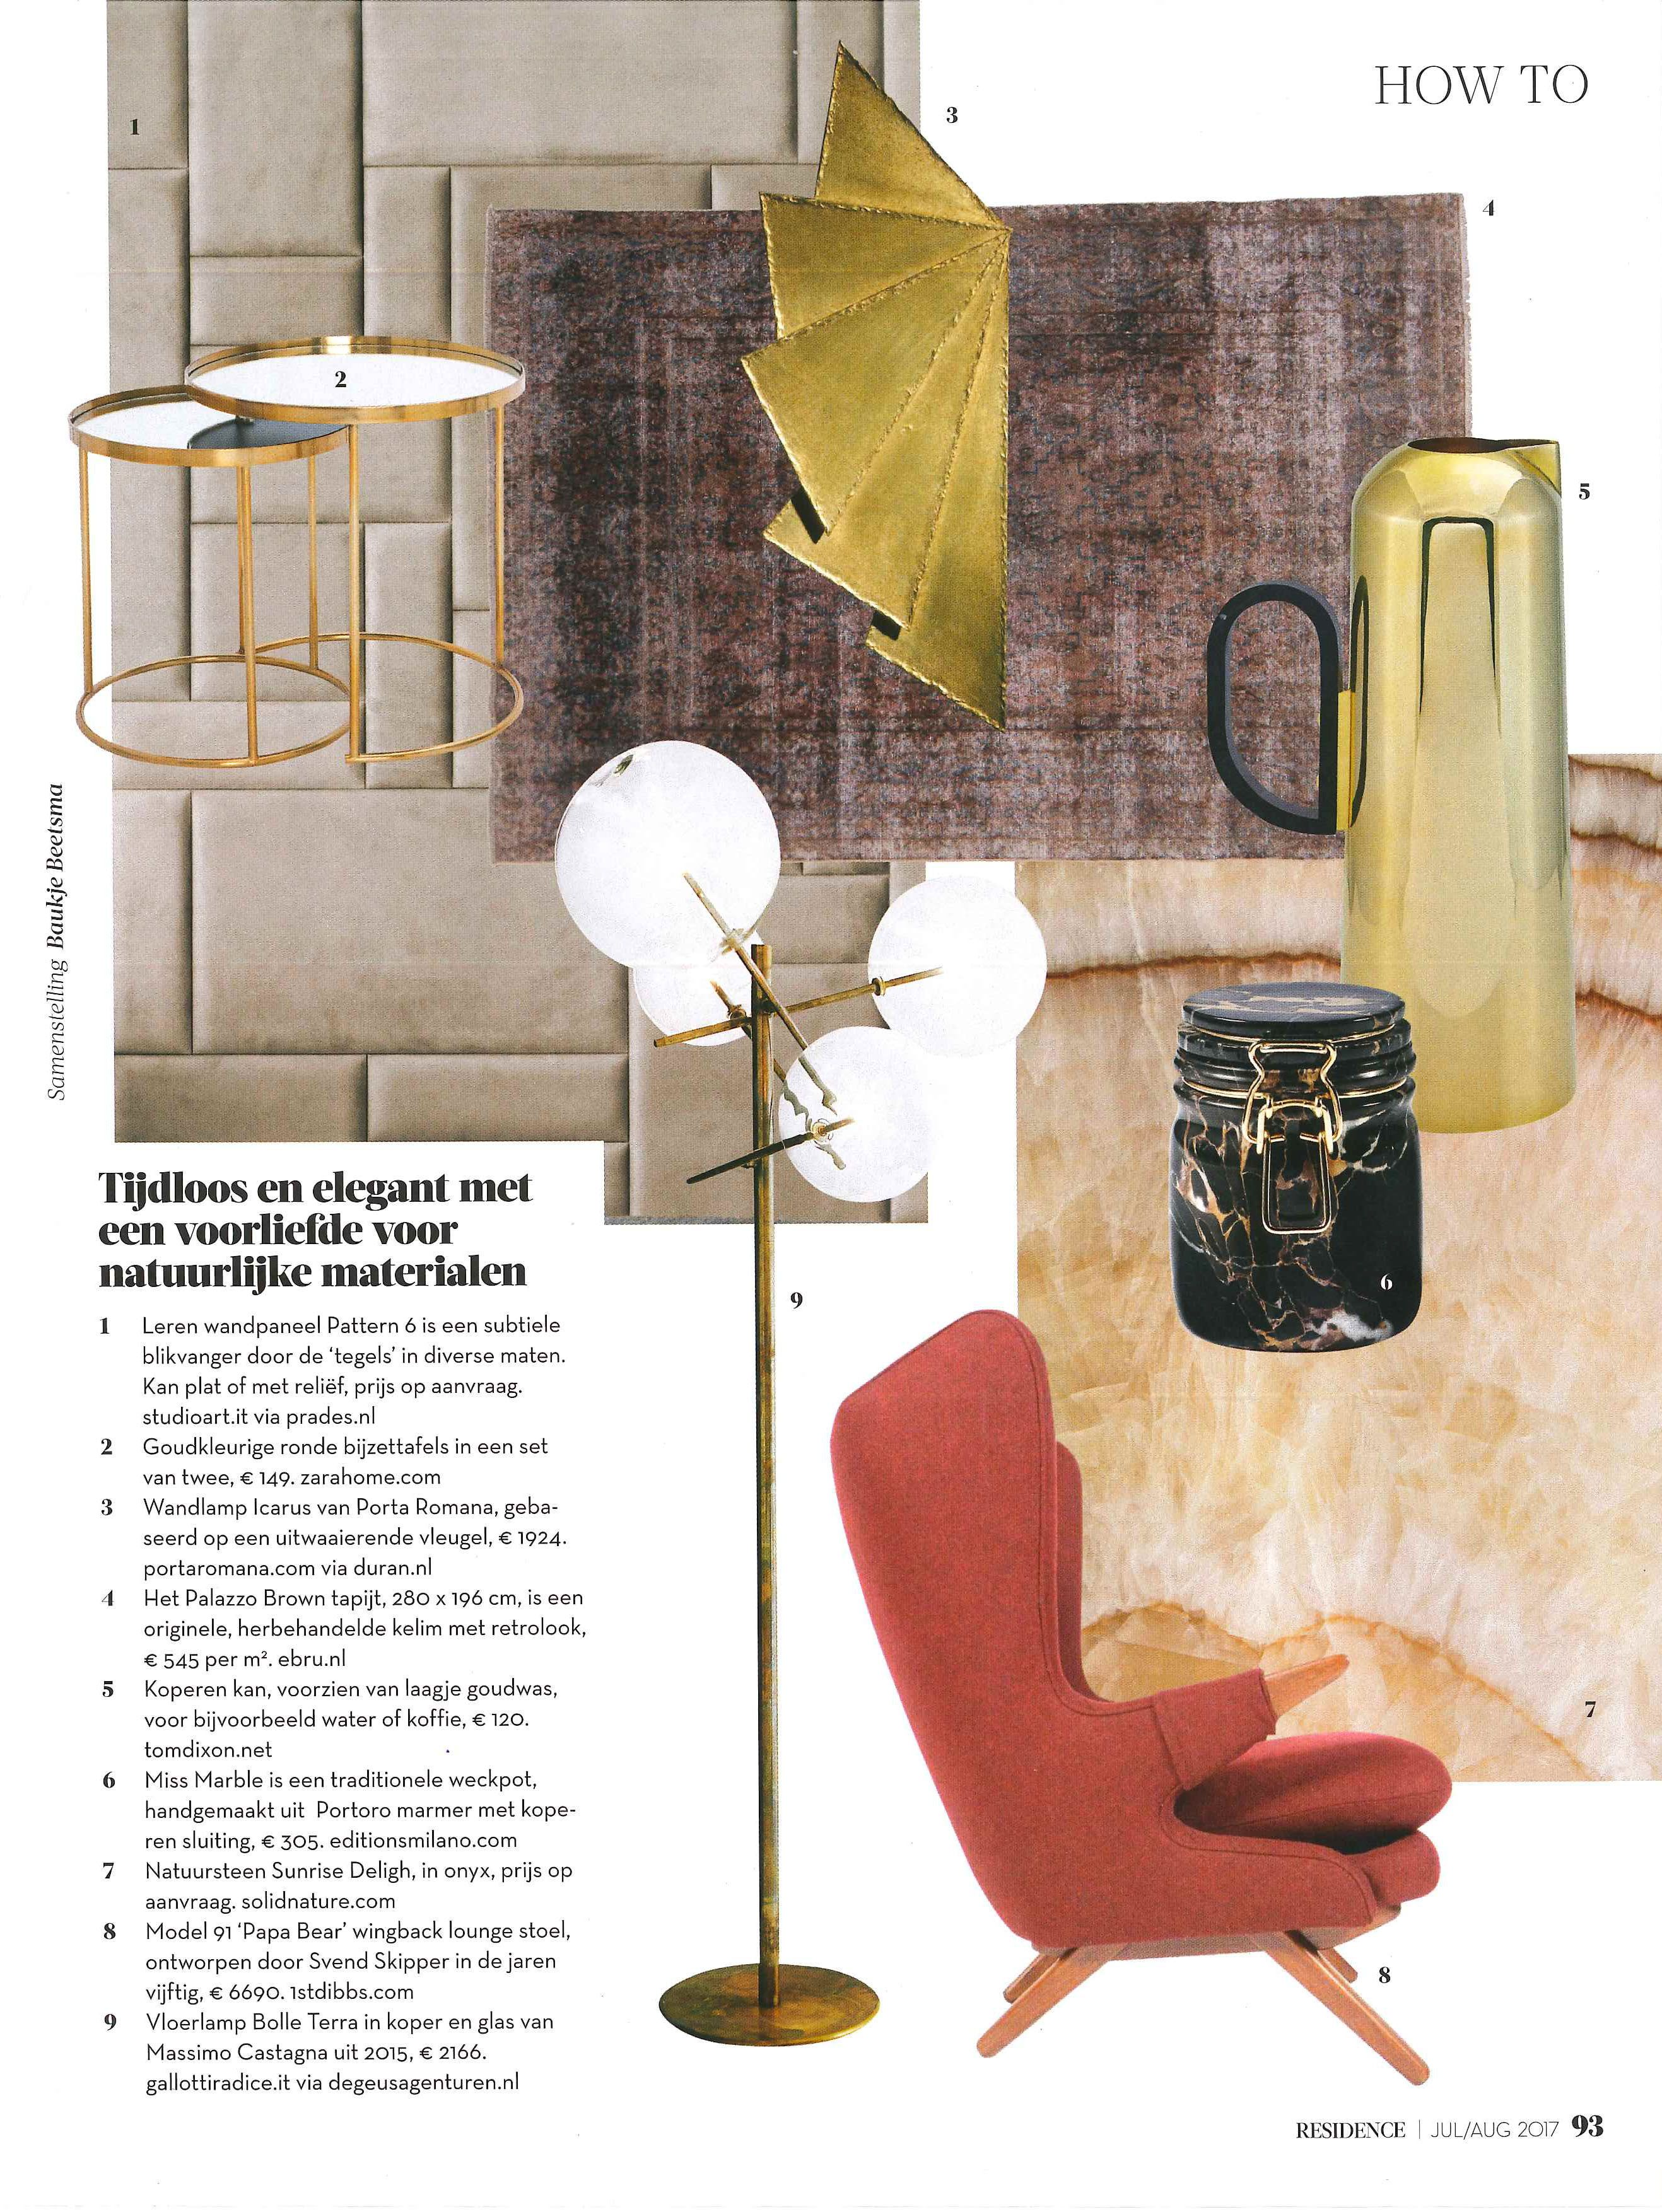 Home decor collage from january 2017 featuring currey company - Icarus Wall Light By Porta Romana In Residence Magazine July August 2017